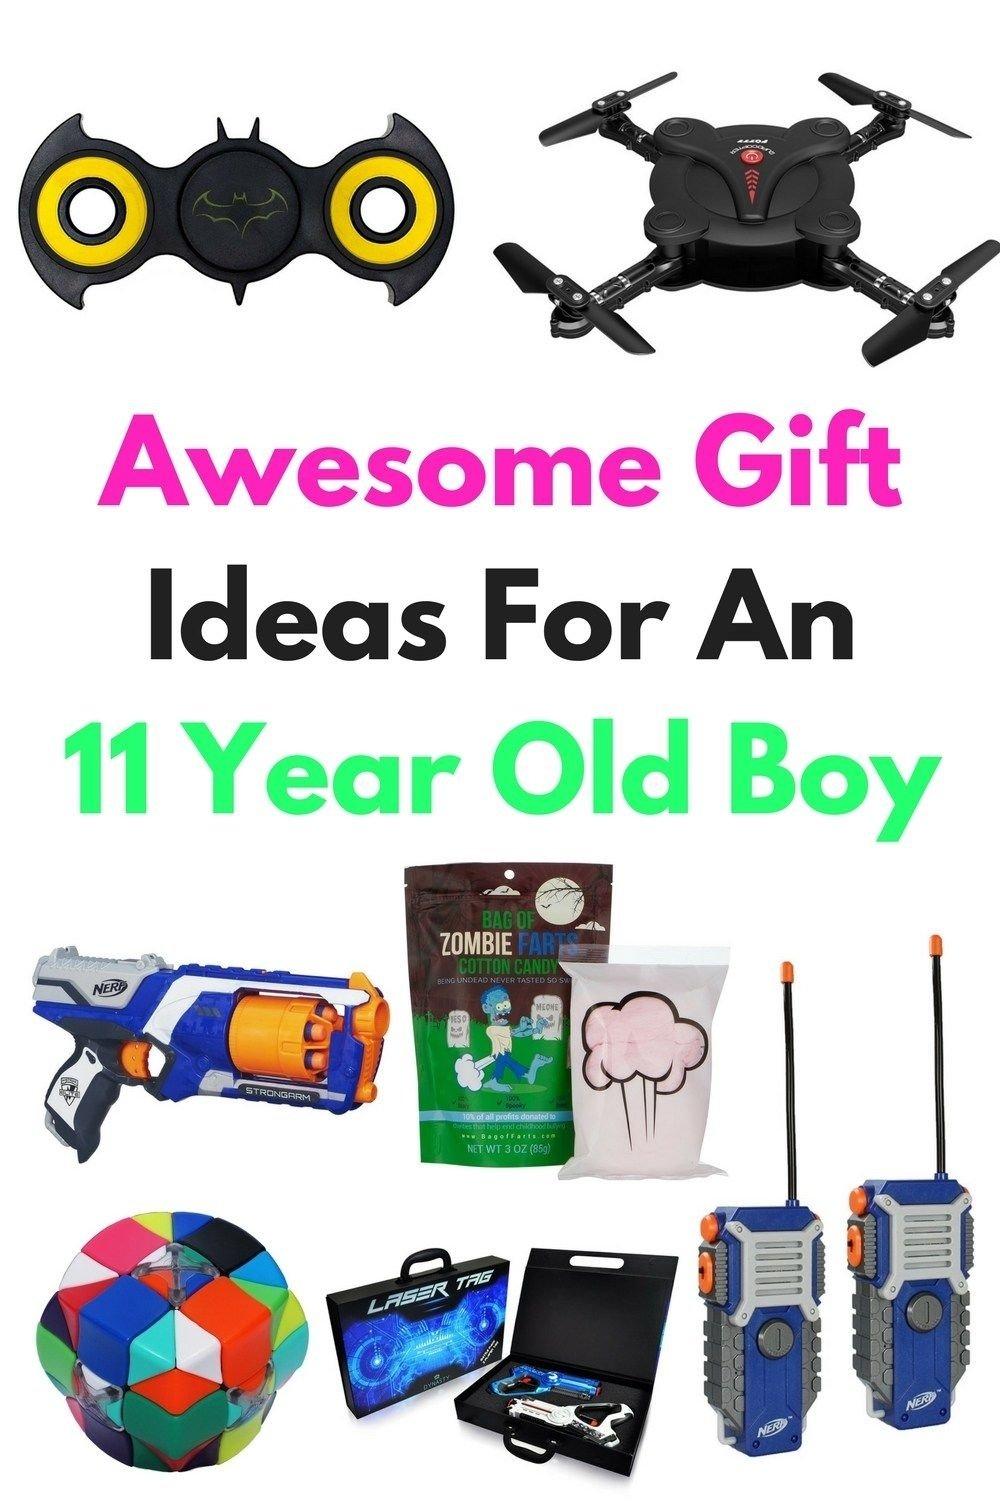 10 Pretty Gift Ideas For An 11 Year Old Boy awesome gift ideas for an 11 year old boy awesome gifts easter 4 2021